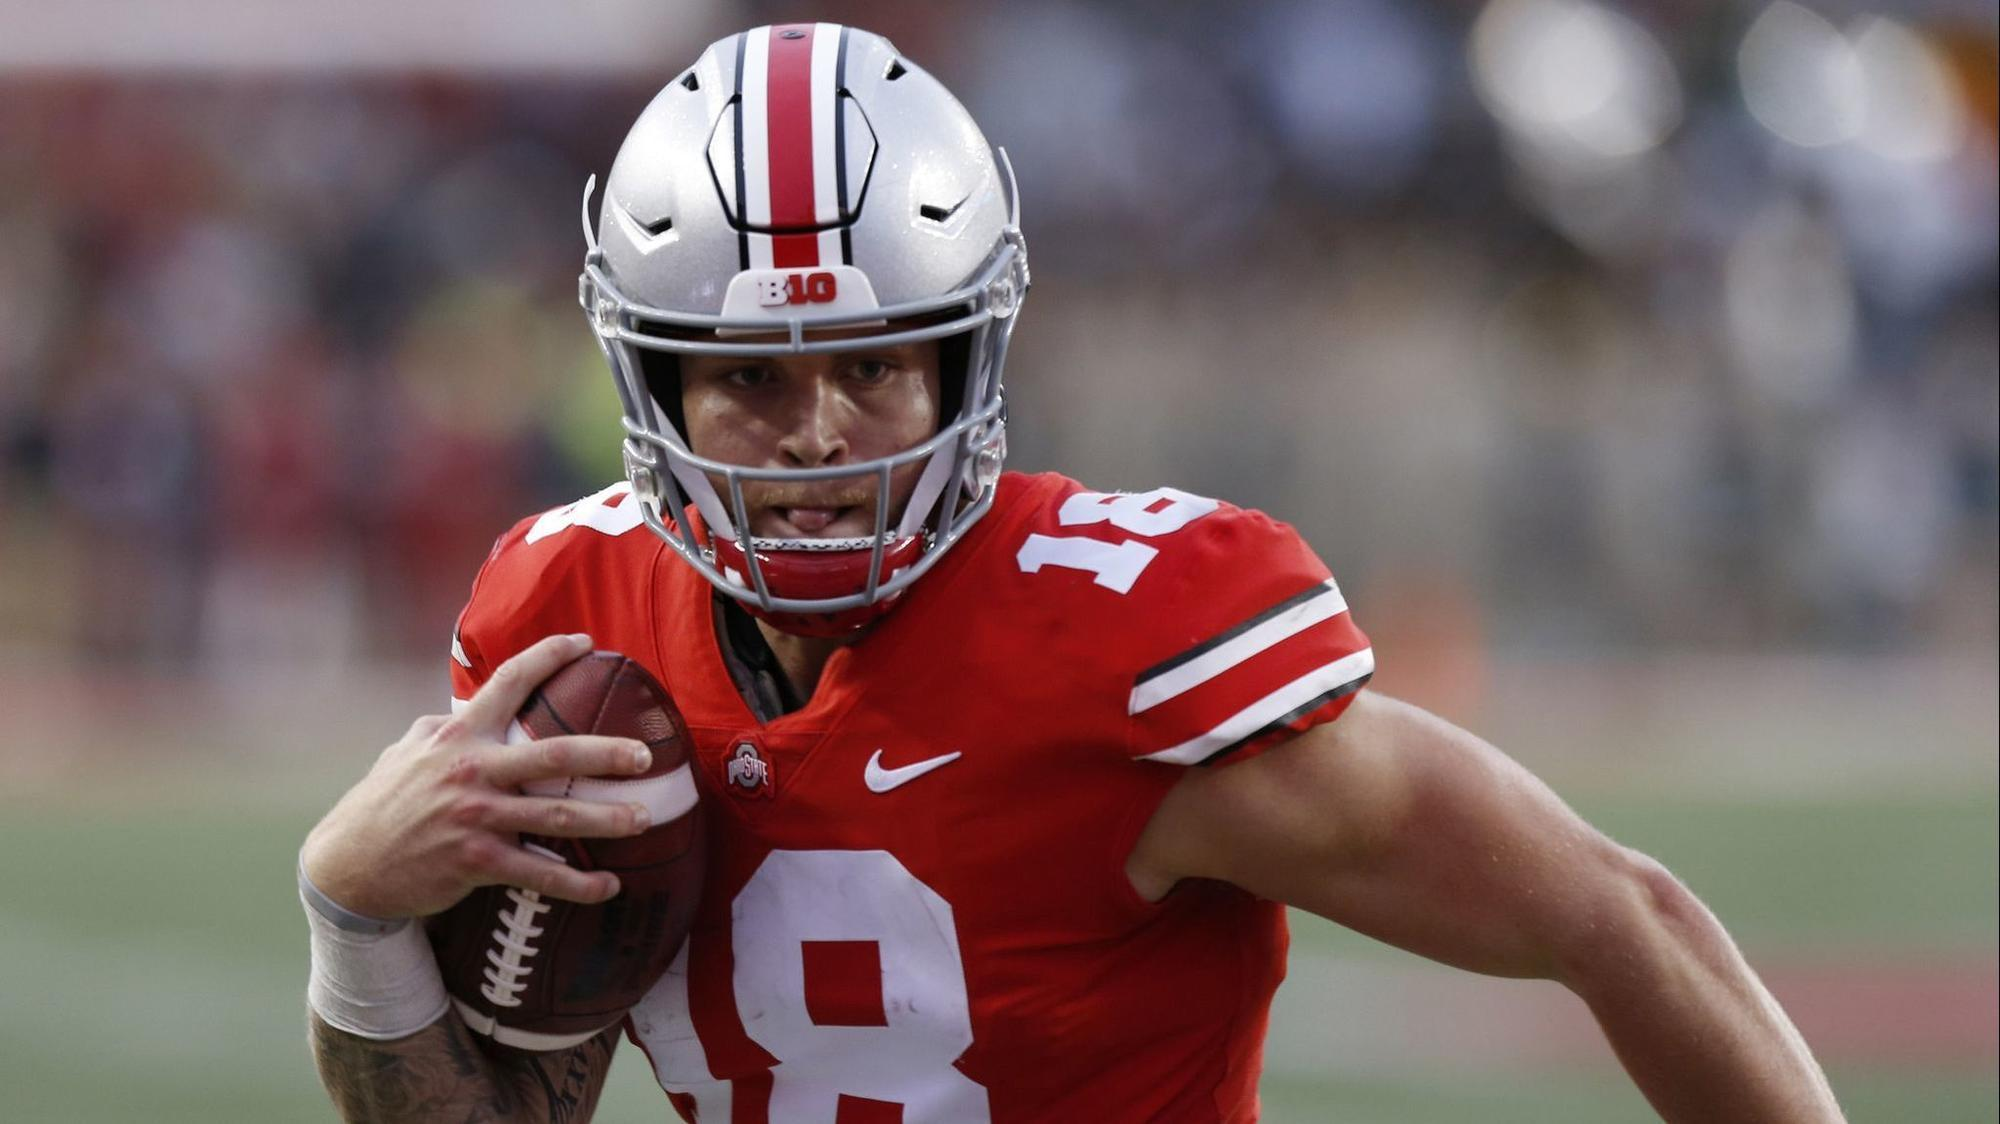 910b6d476 Former Ohio State quarterback Tate Martell announces he is transferring to  Miami - Sun Sentinel